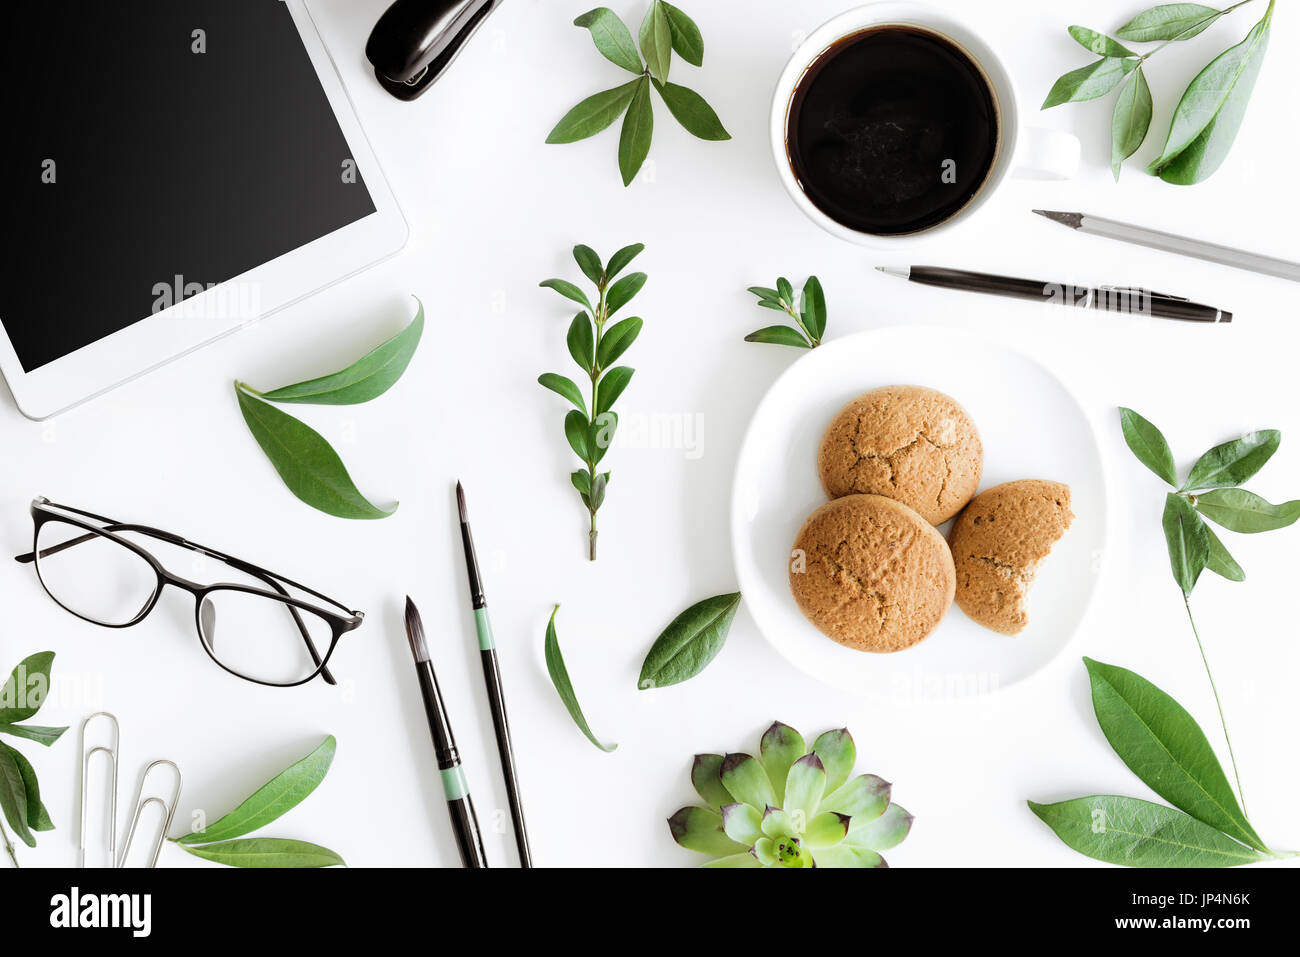 Top view of digital tablet, cookies and office supplies isolated on white, wireless communication concept - Stock Image